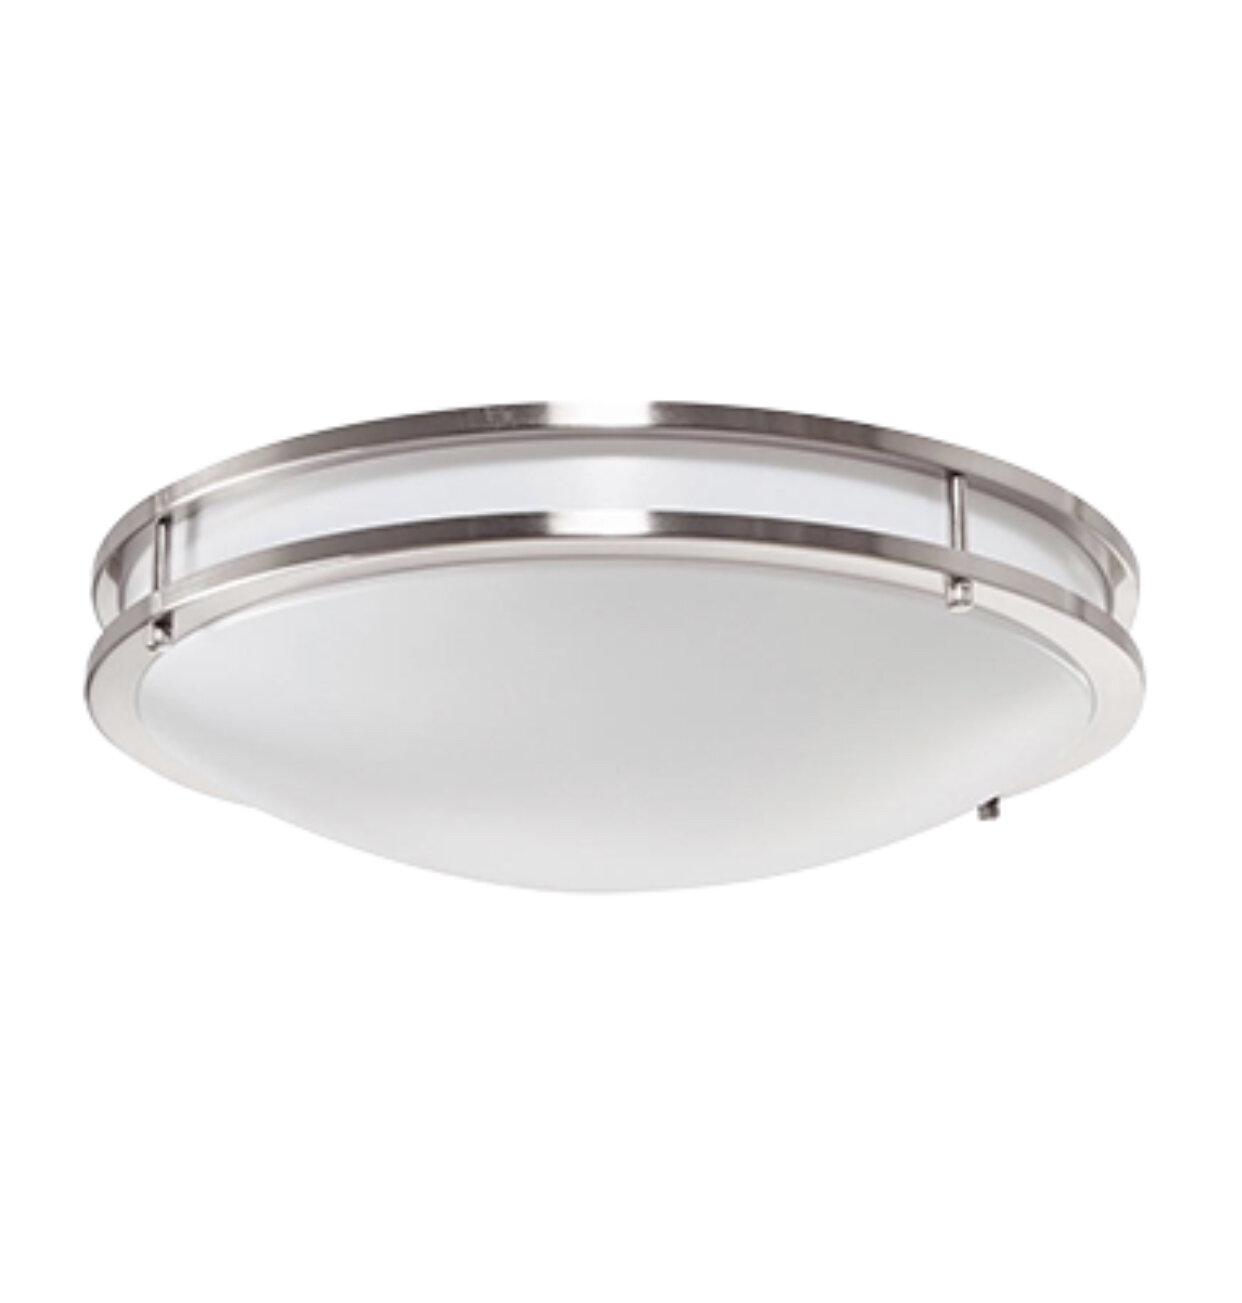 13W LED Satin Nickel Ringed Ceiling Light (DISPLAY ONLY)